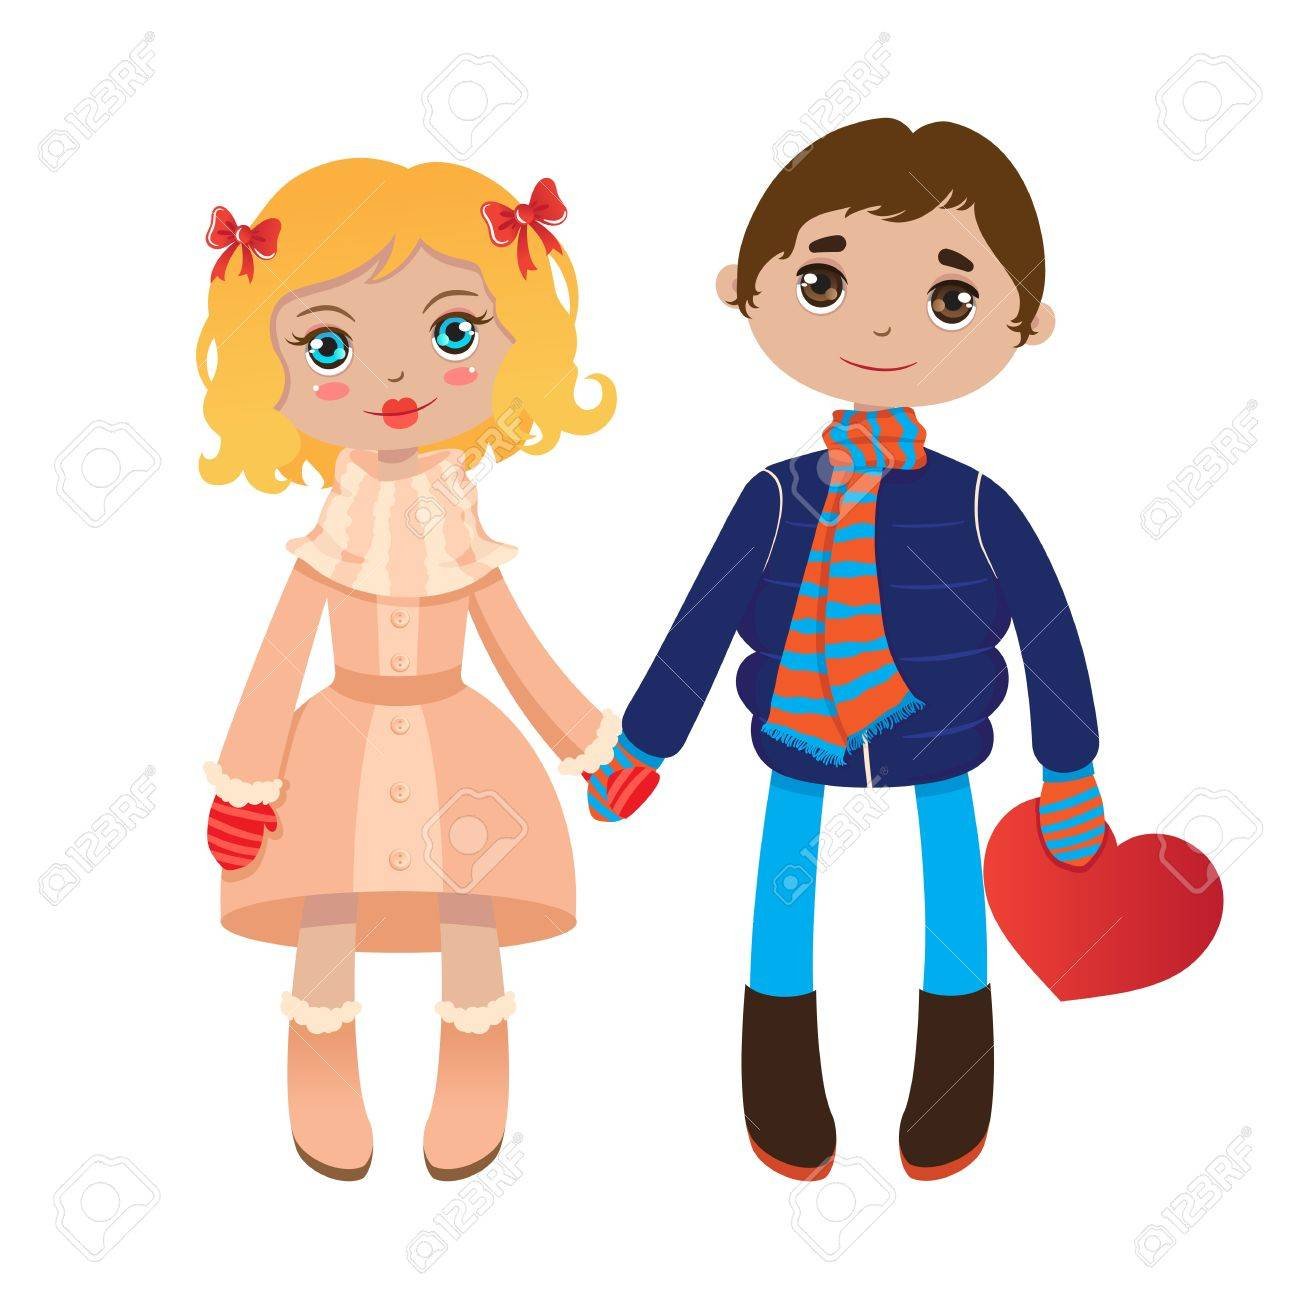 lovers boy and girl holding hands royalty free cliparts vectors rh 123rf com